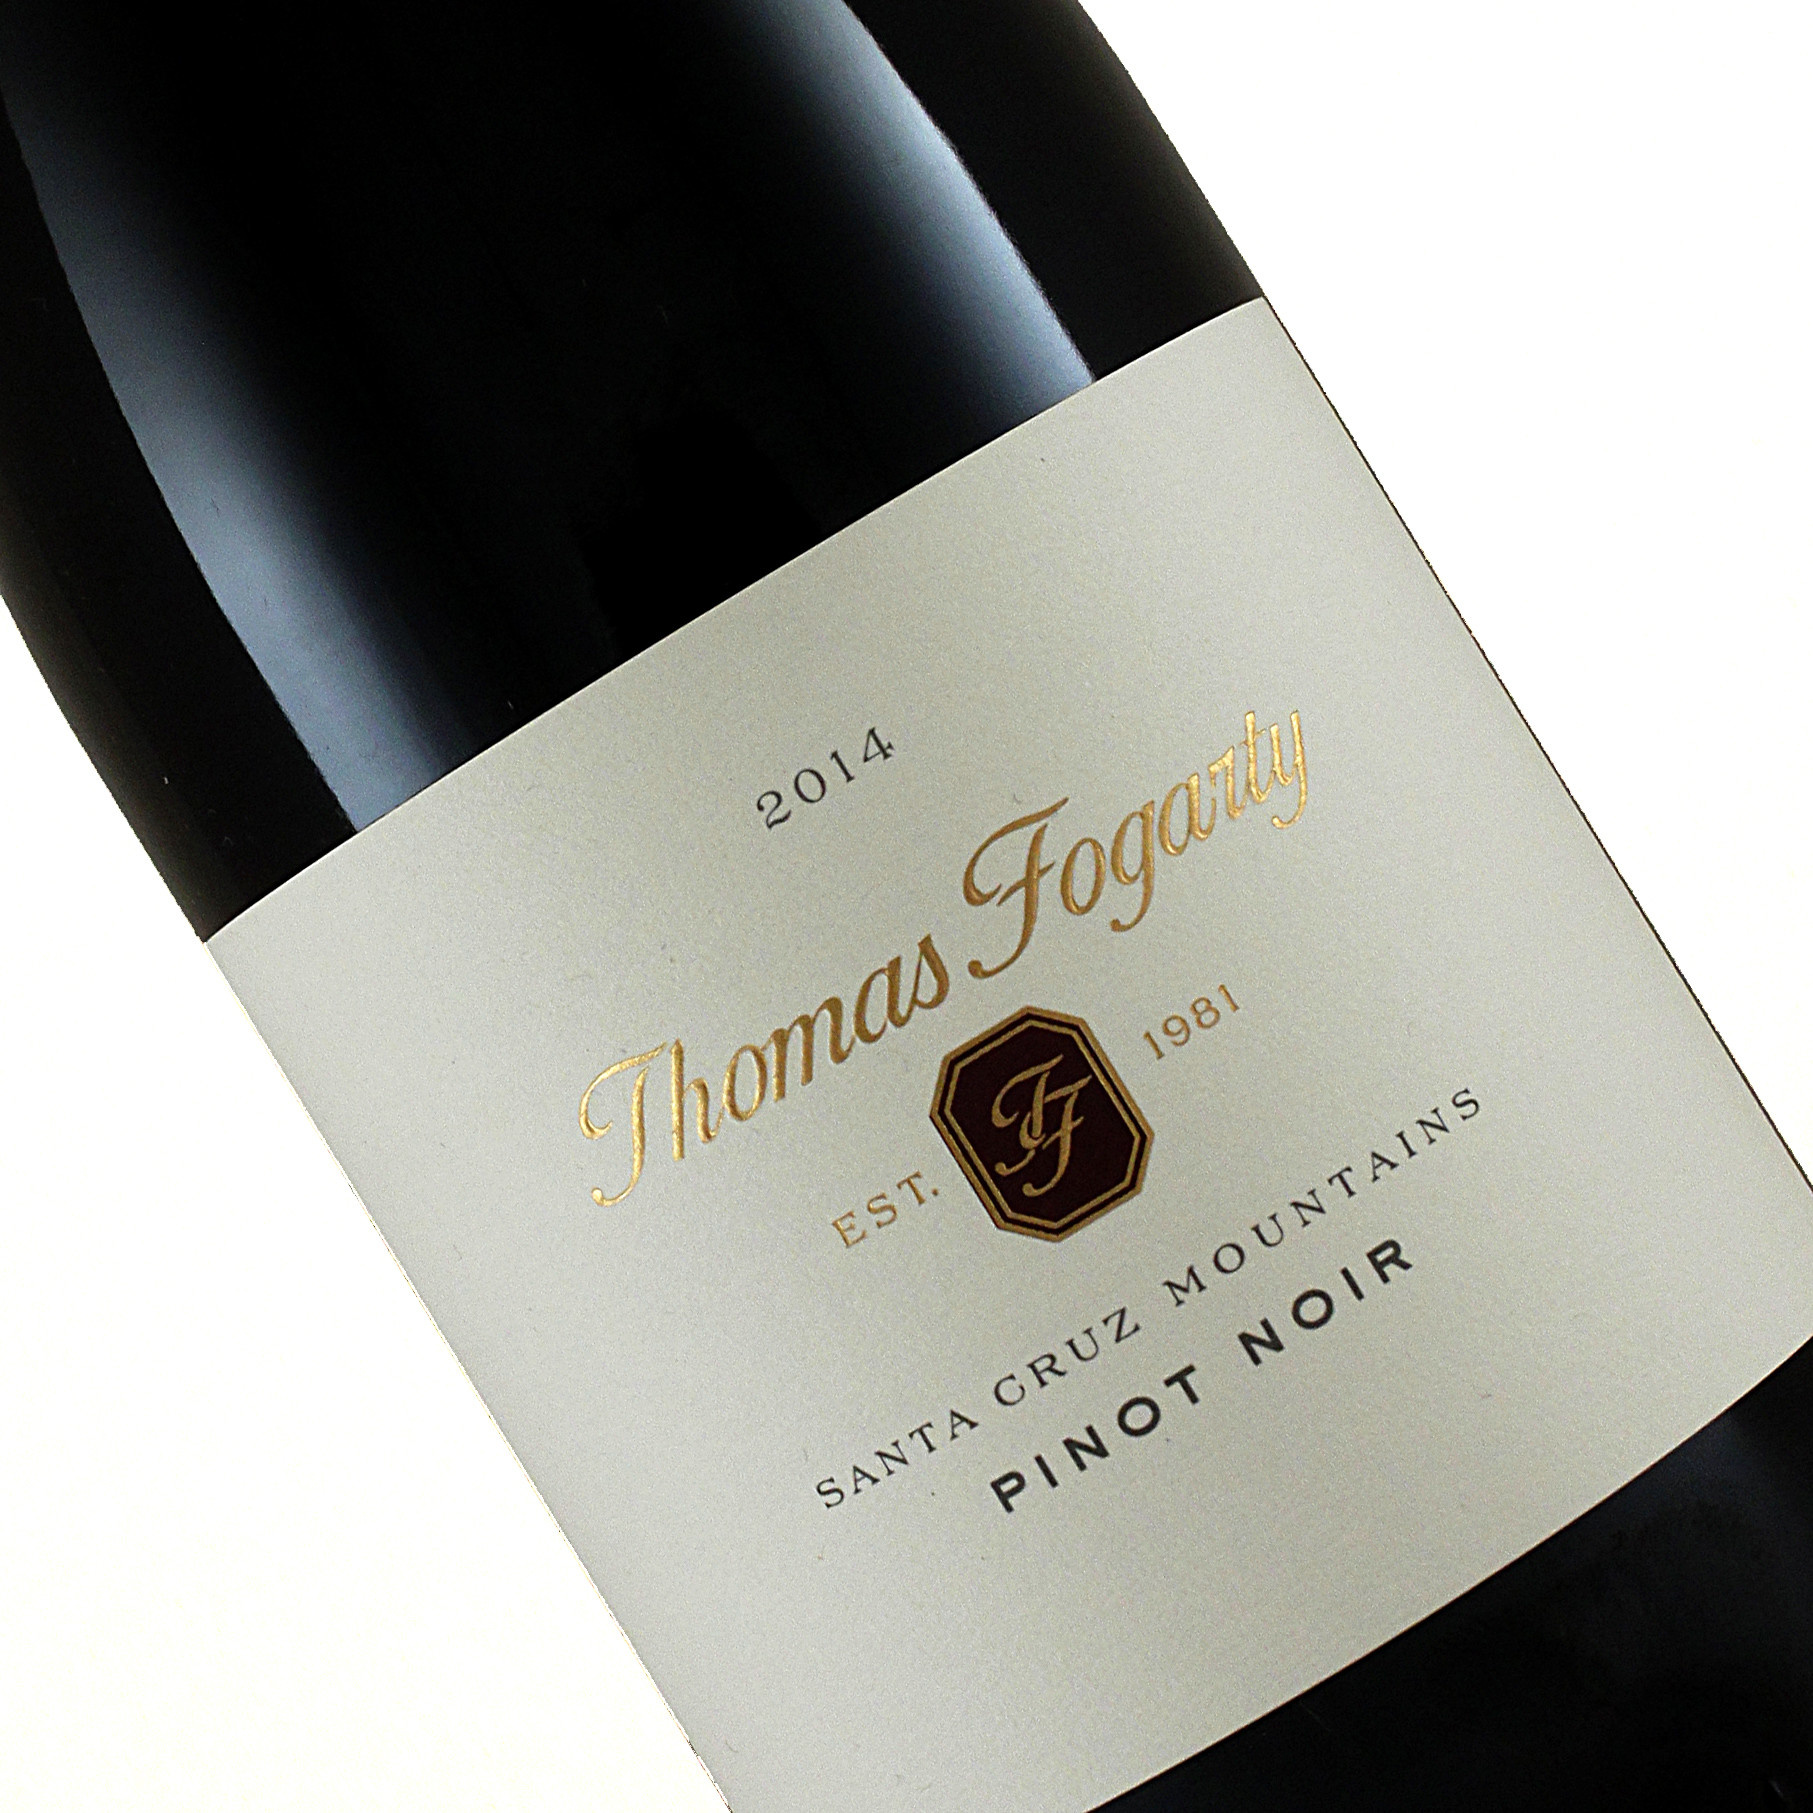 Thomas Fogarty 2014 Pinot Noir, Santa Cruz Mountains